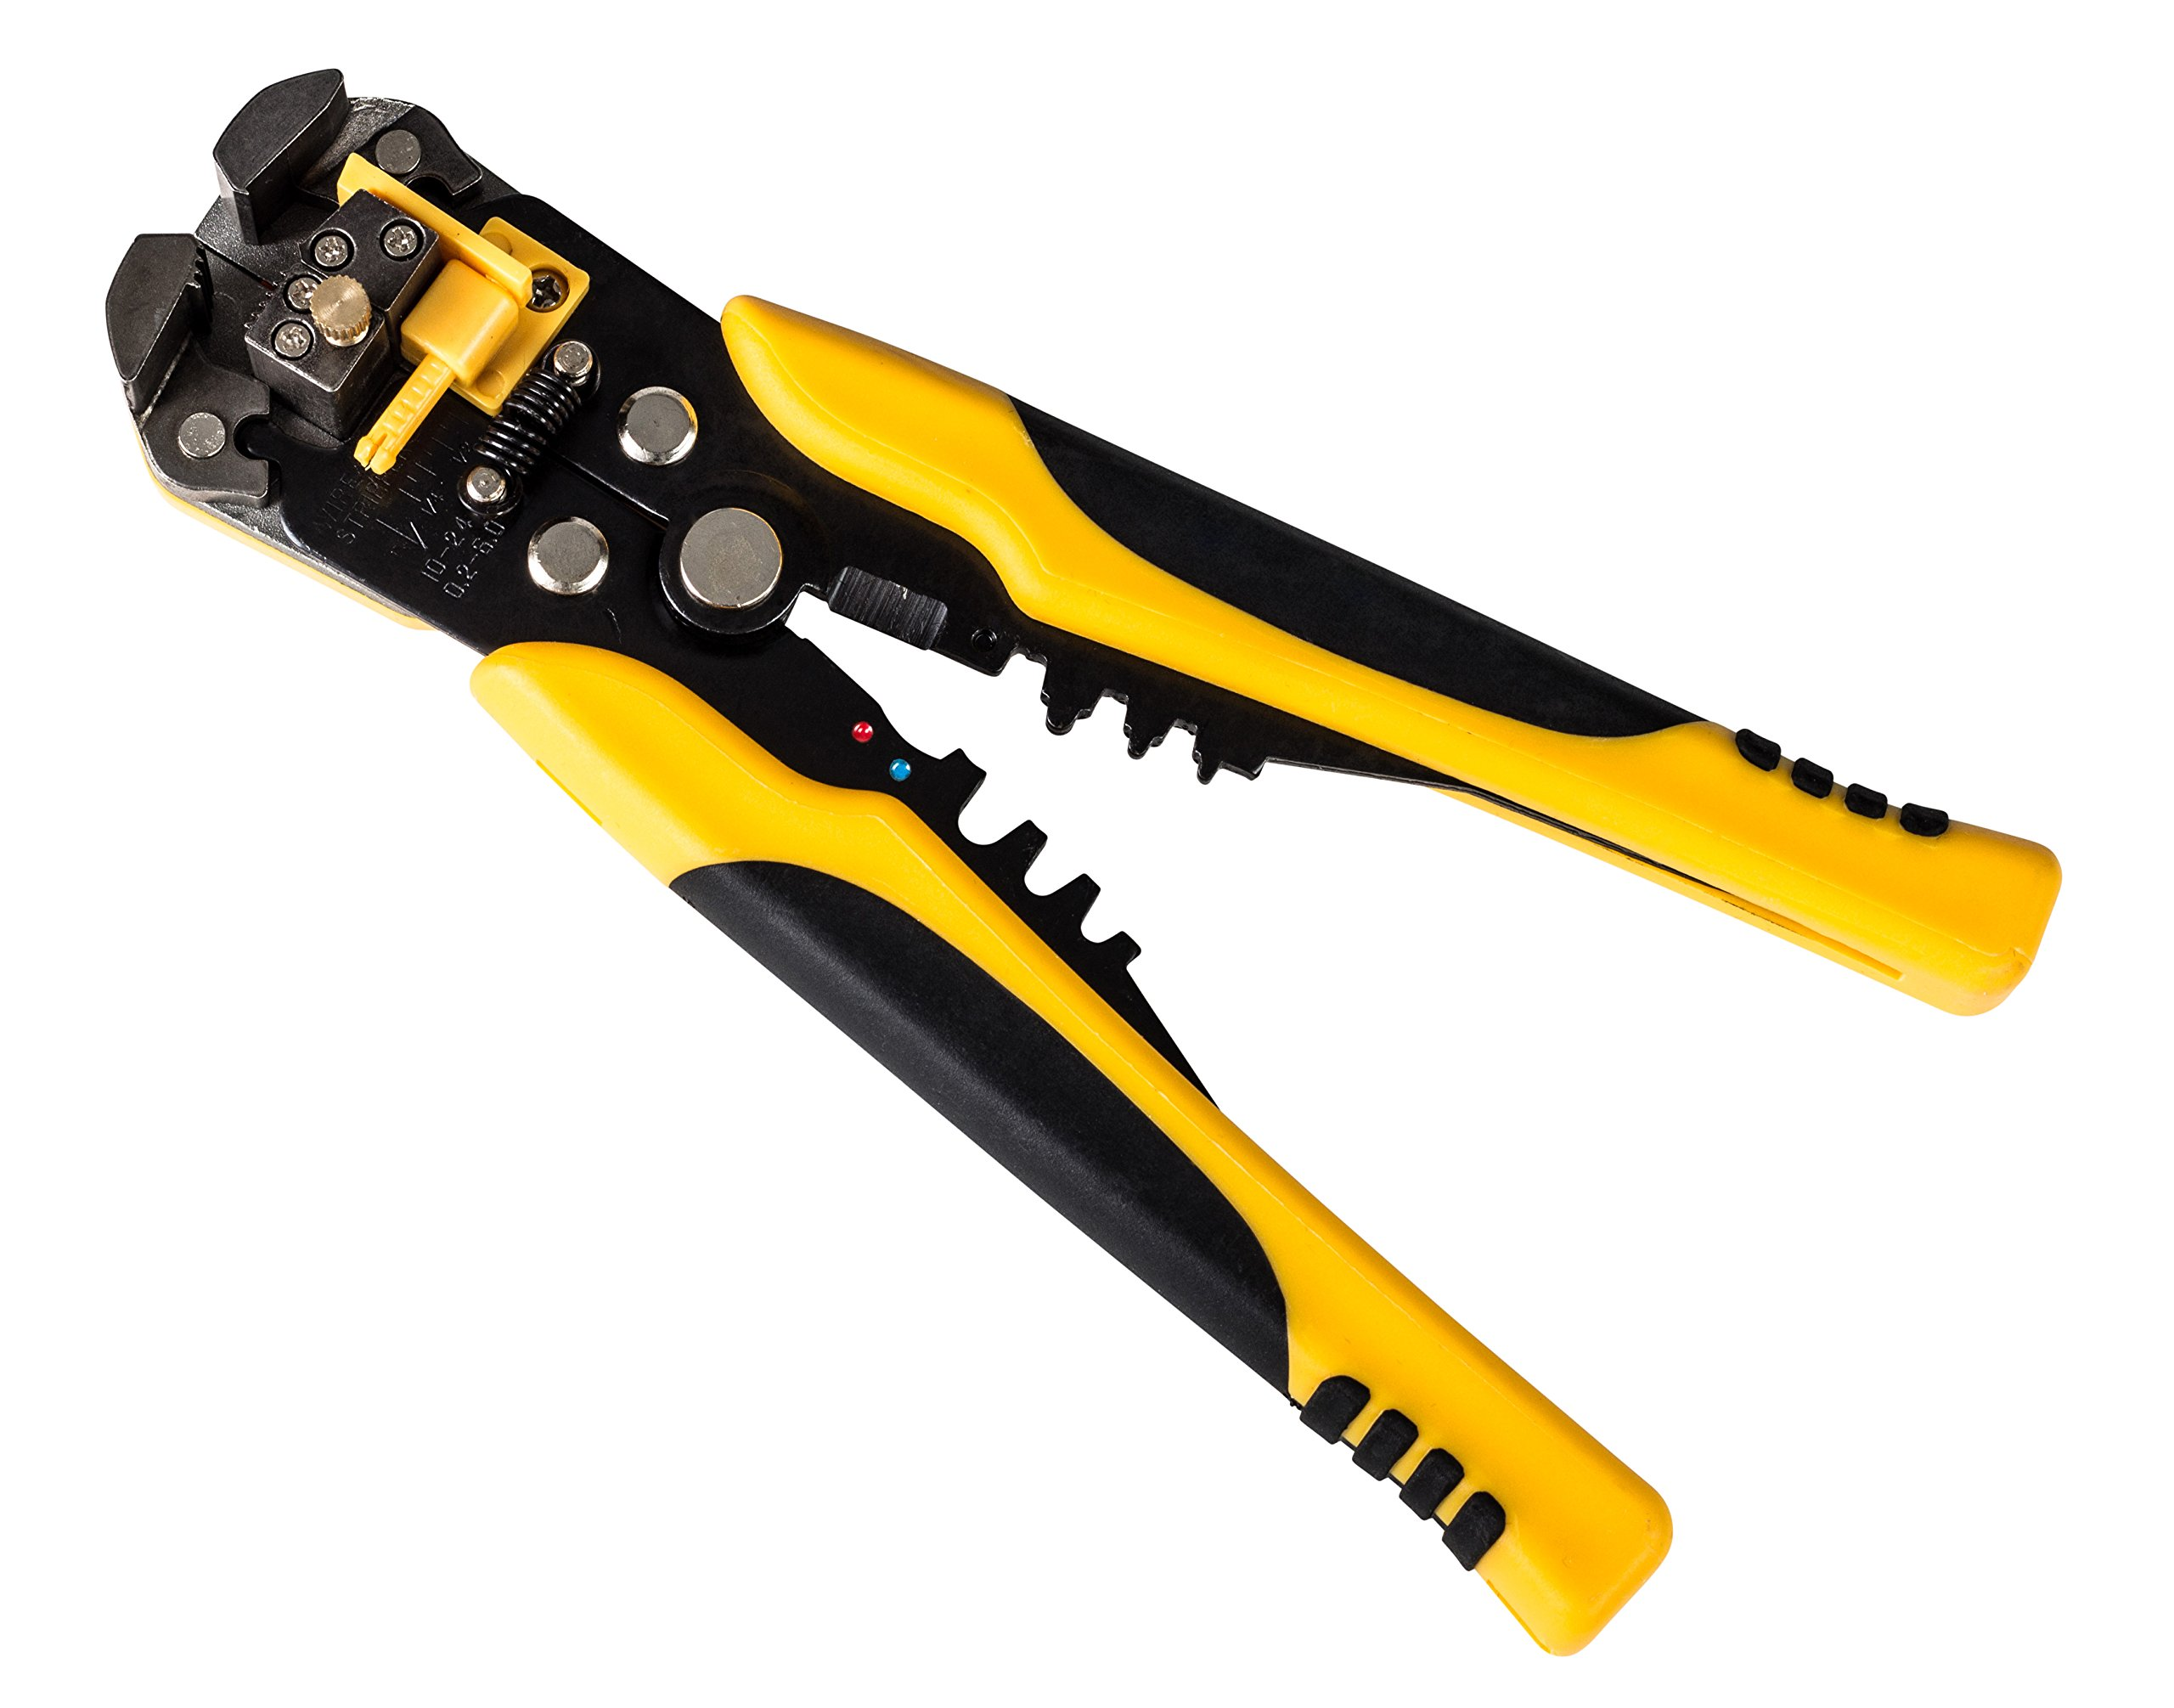 Gee Gadgets Self Adjusting Wire Stripper Comfortable Grip and Ergonomic Handle Powerful Stripping, Cutter, Crimper and Pliers Hand Tool By Gee Gadgets